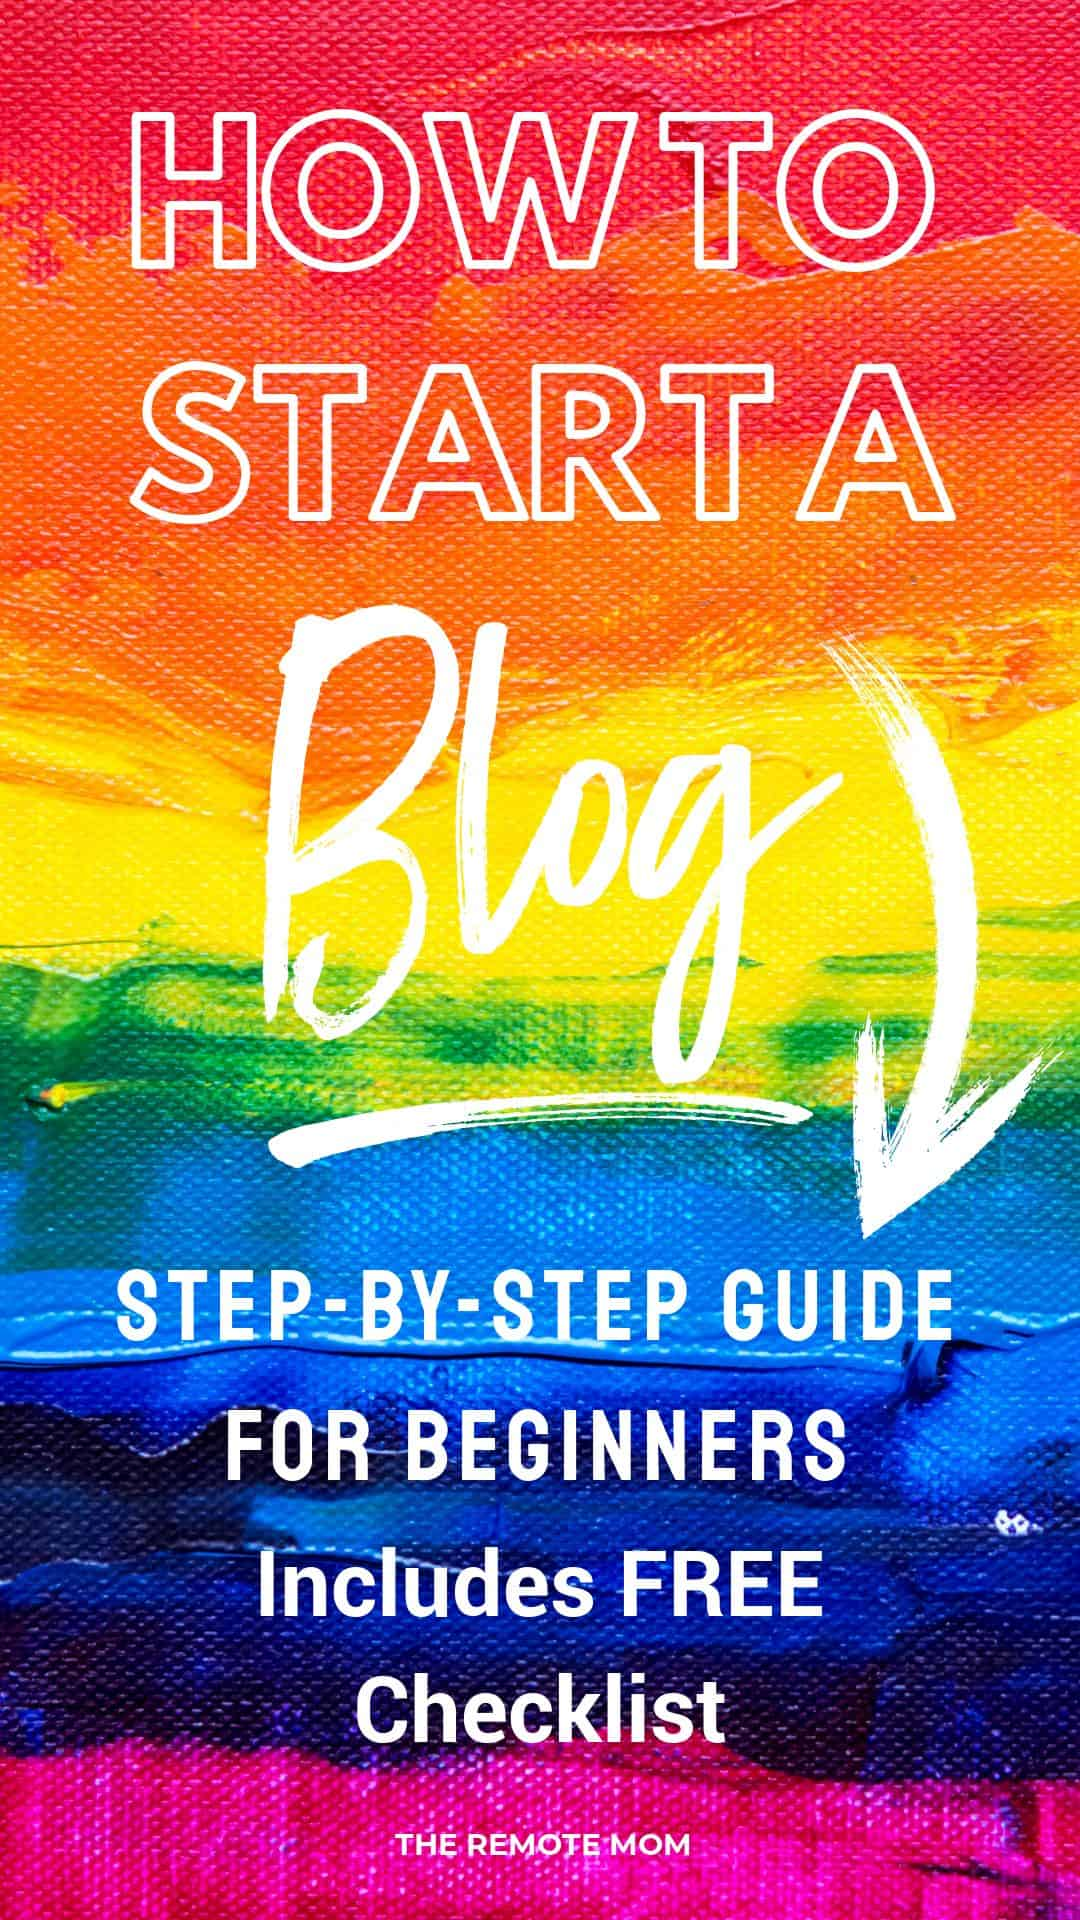 How to start a blog checklist